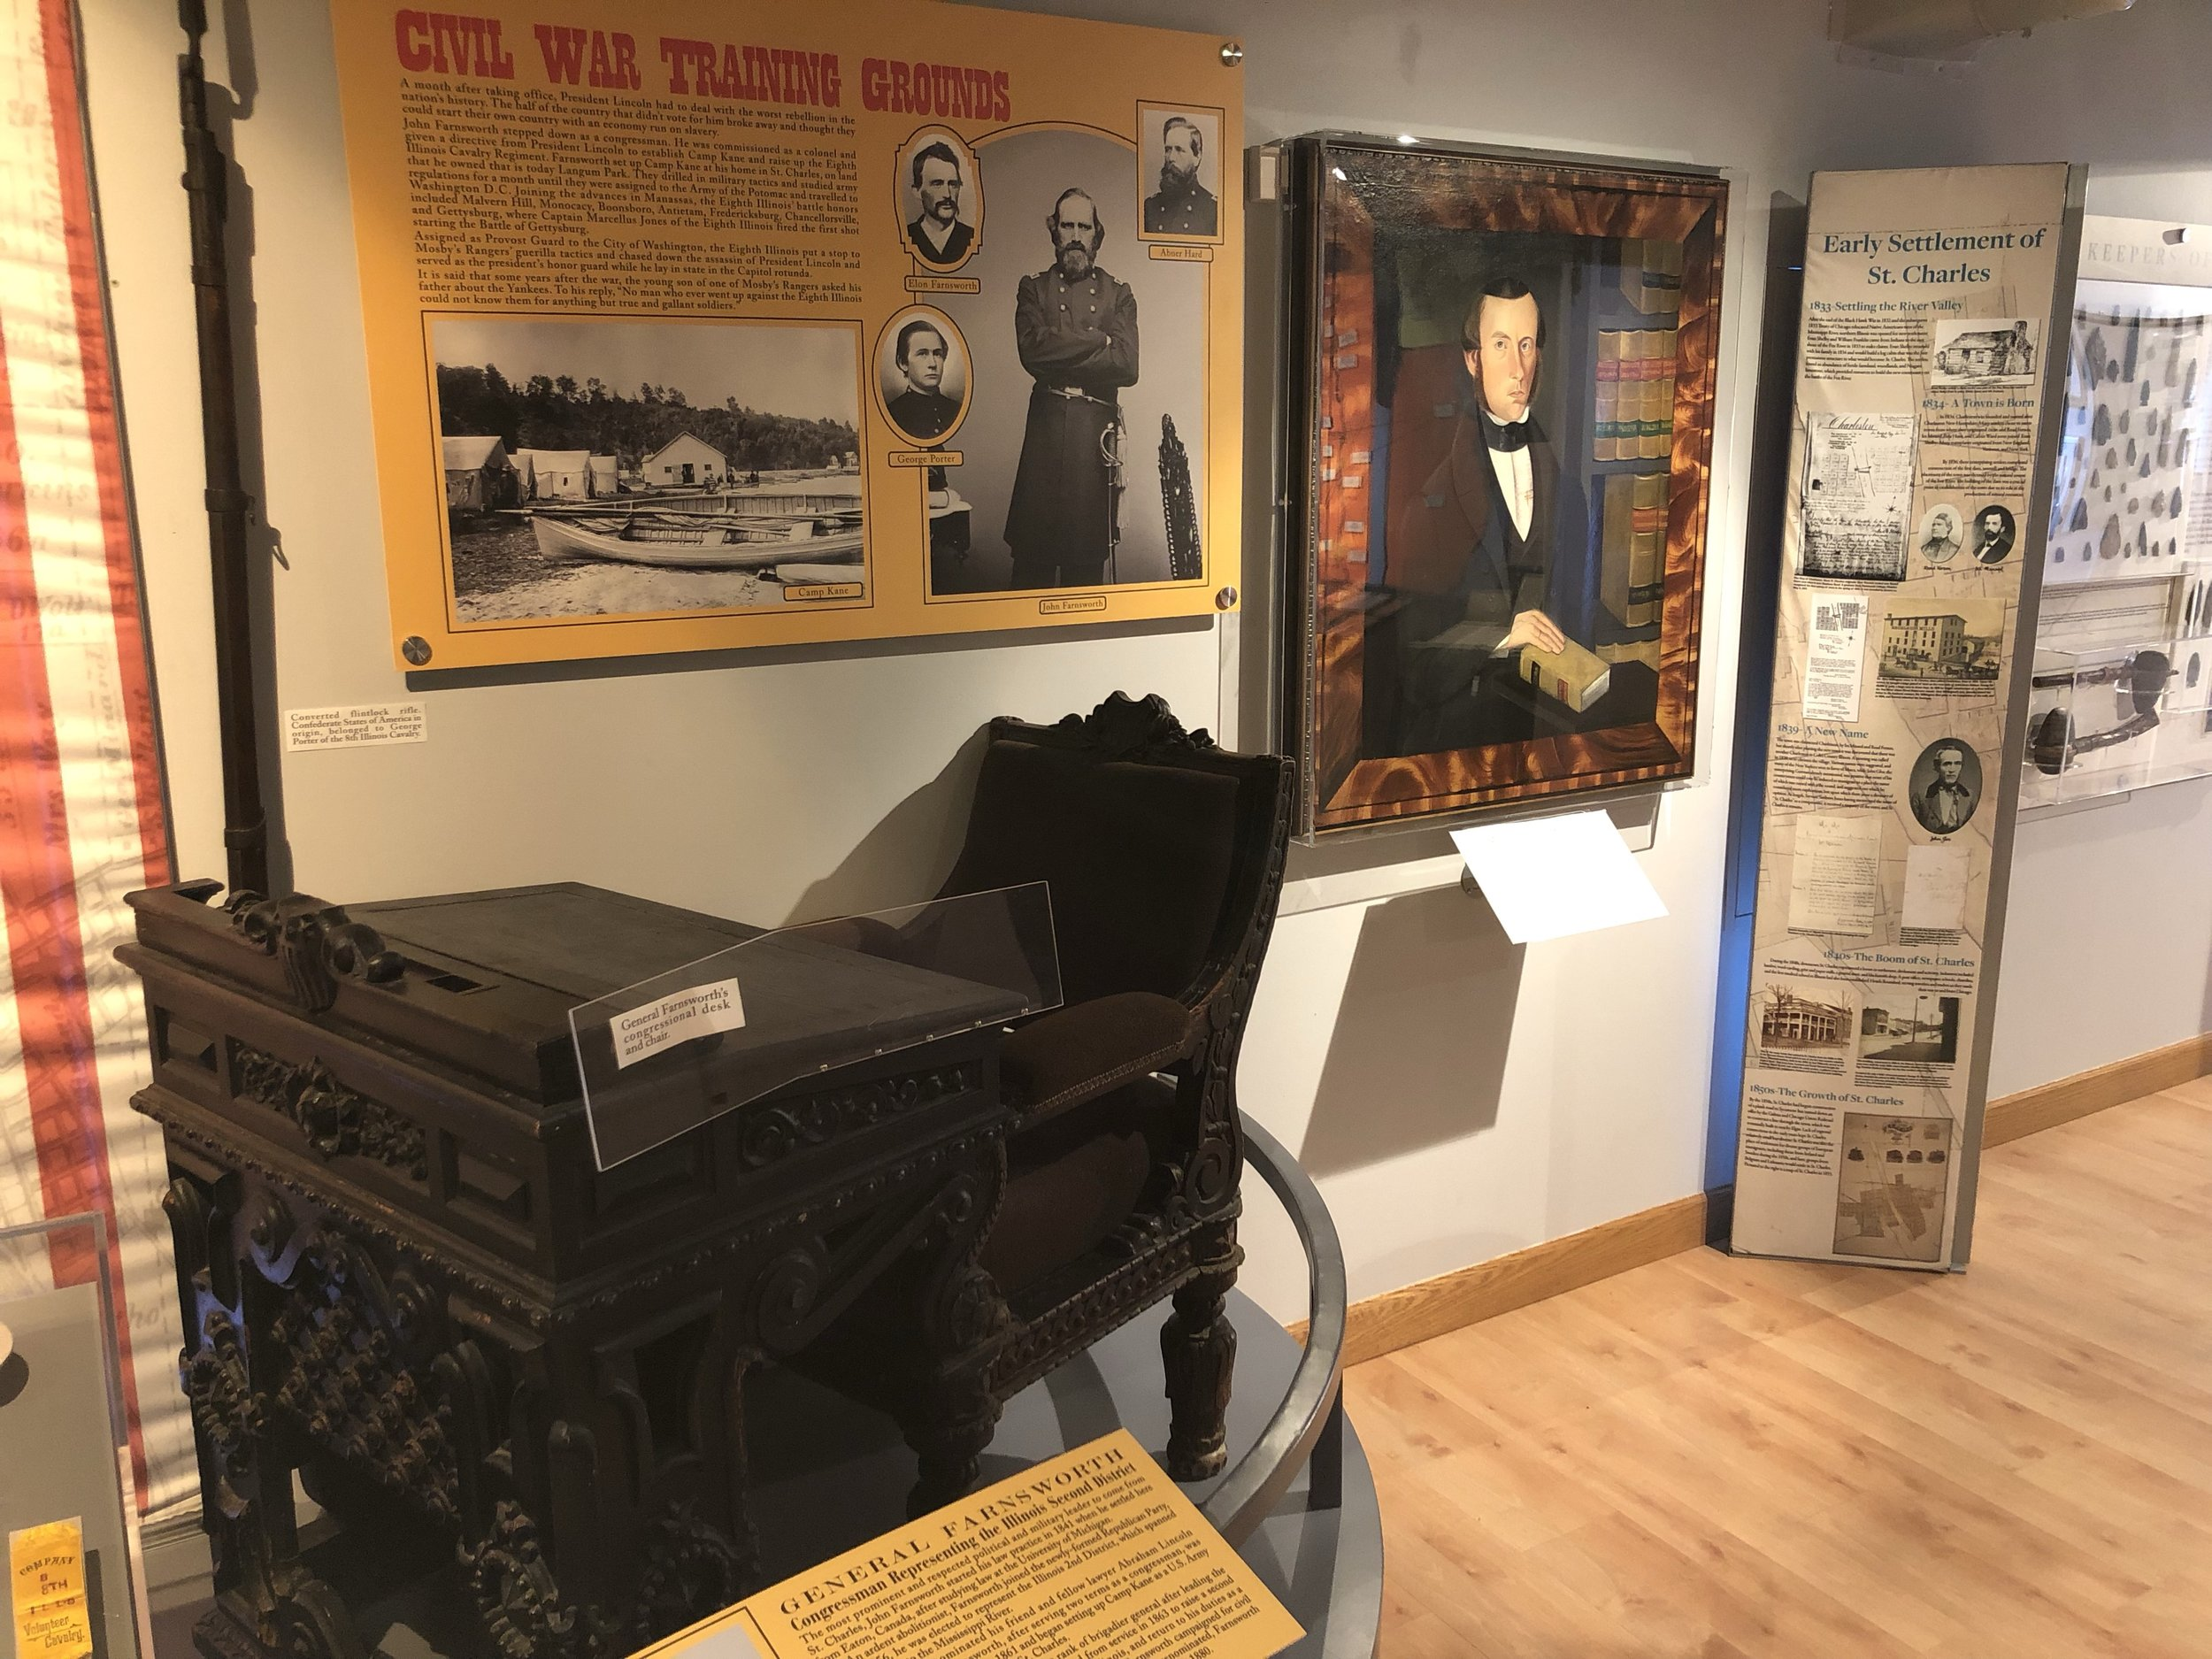 Two artifacts that serve as St. Charles connection to the Civil War and freedom seeking movement of the mid-1800s: the congressional desk of U.S. Representative John Farnsworth and the portrait of S.S. Jones painted by Sheldon Peck.